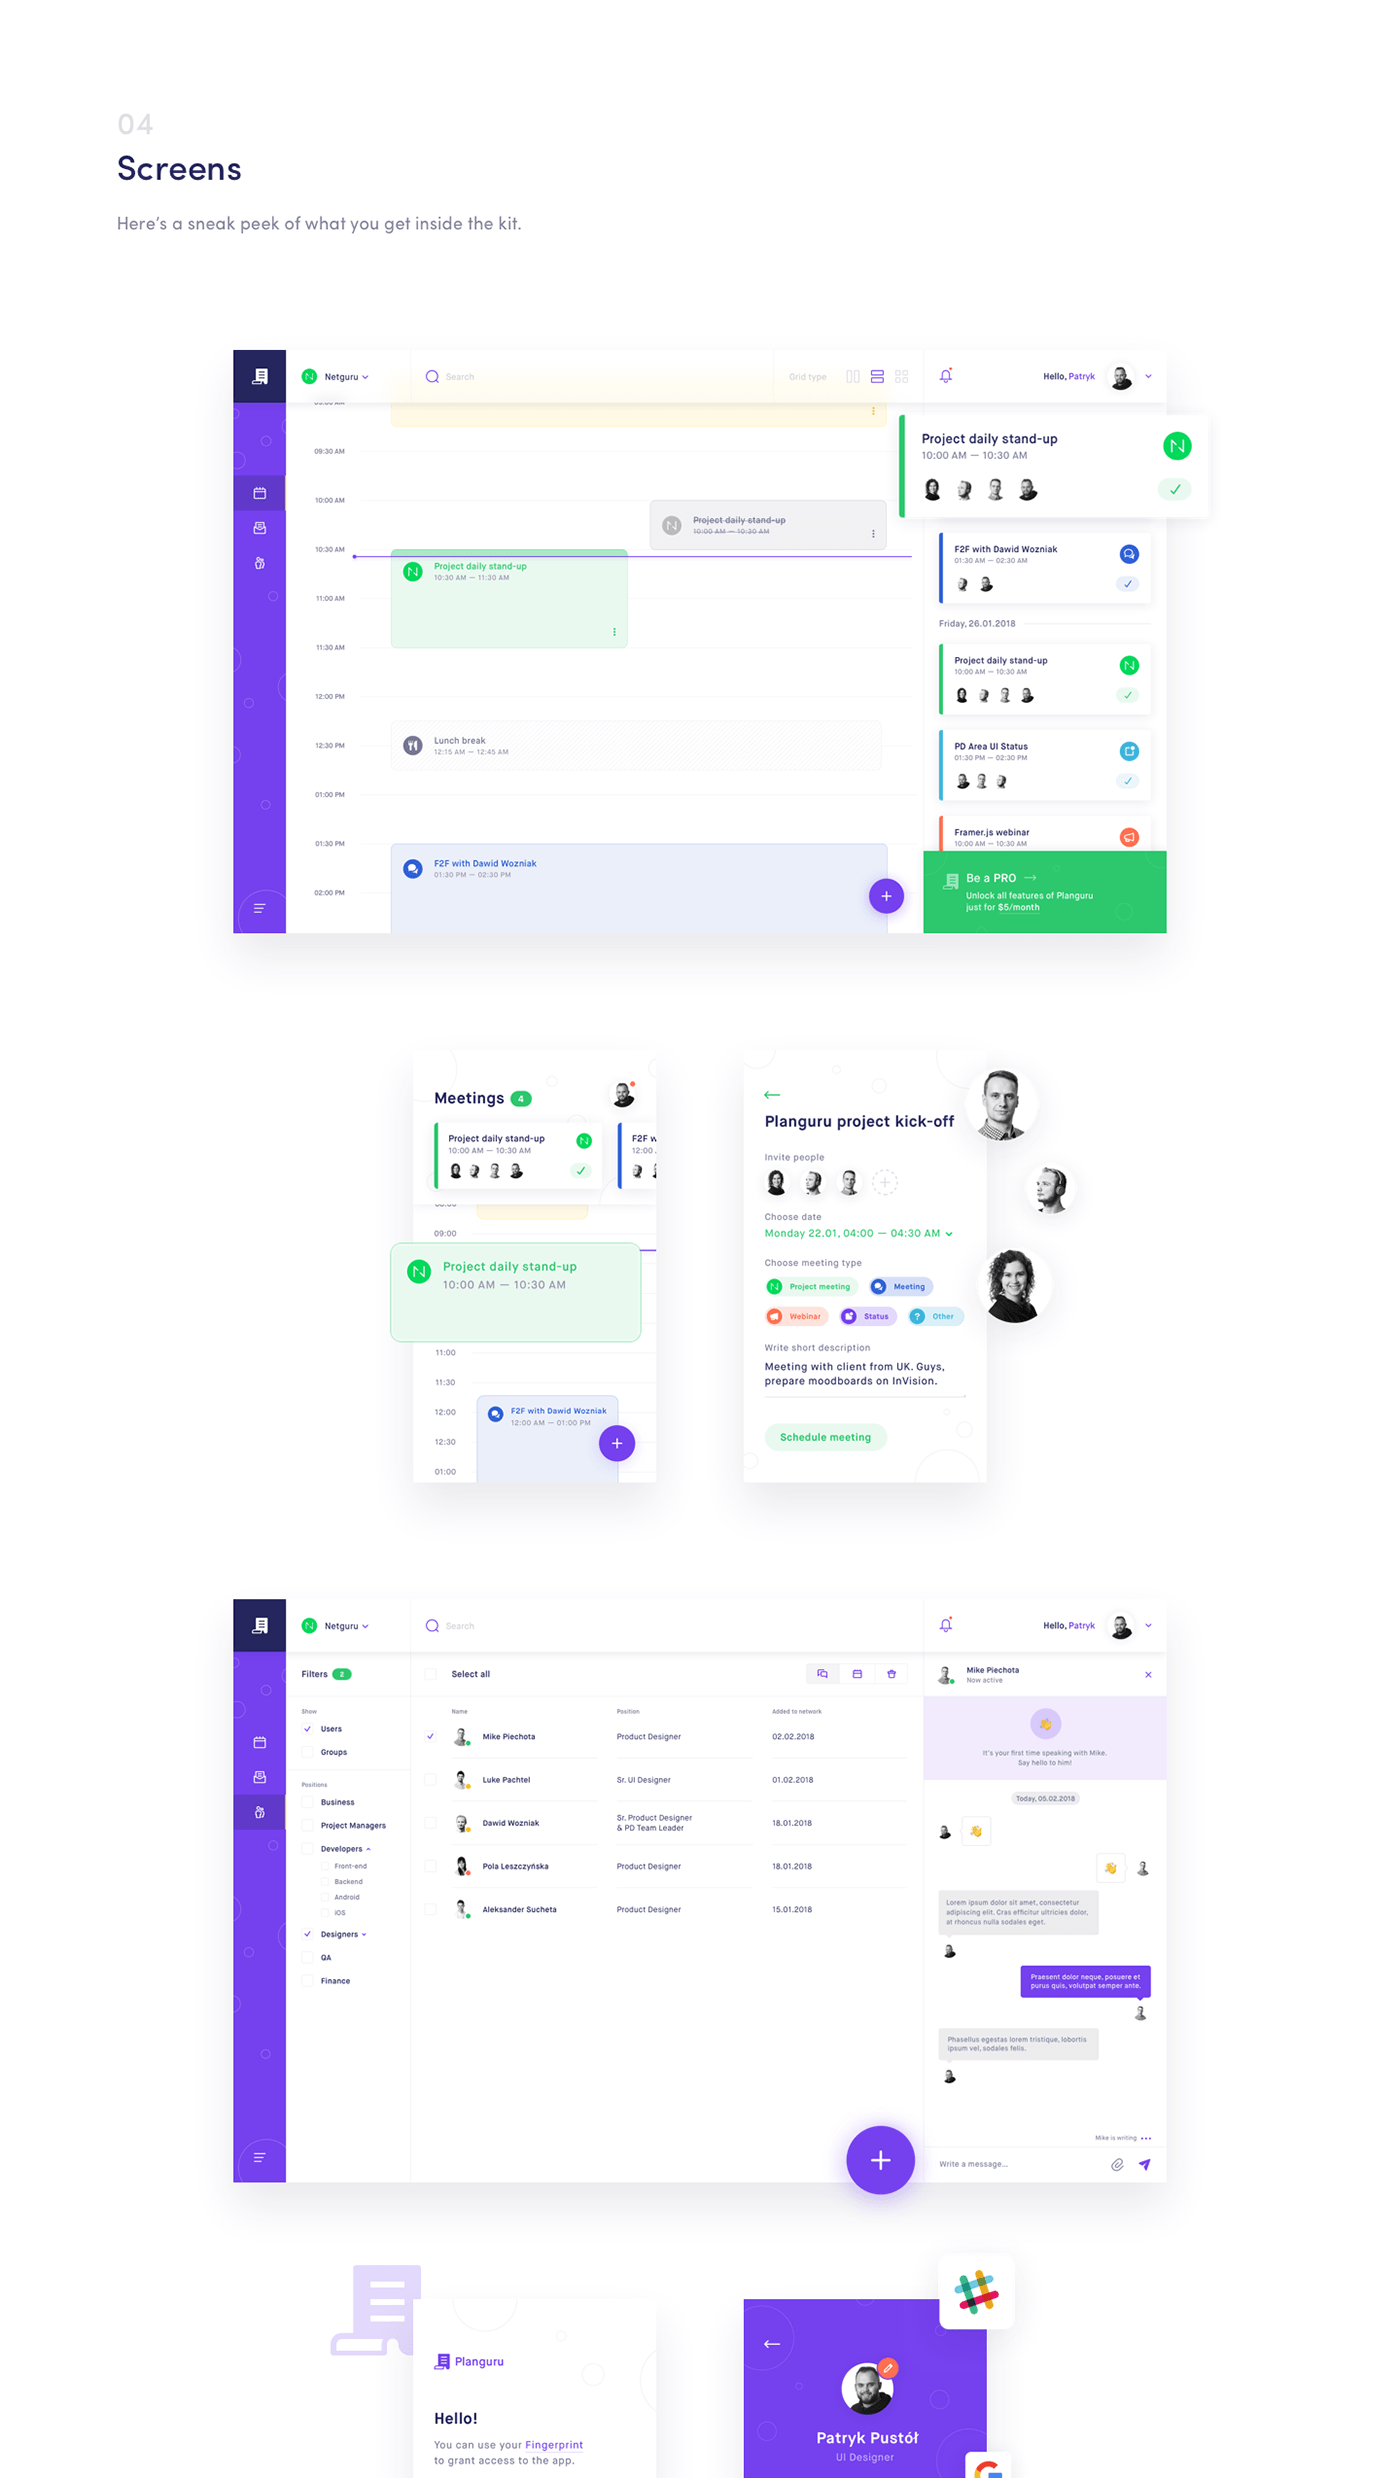 Planguru Free UI Kit - 18 beautiful screens designed in Sketch, ready for use in personal and professional projects